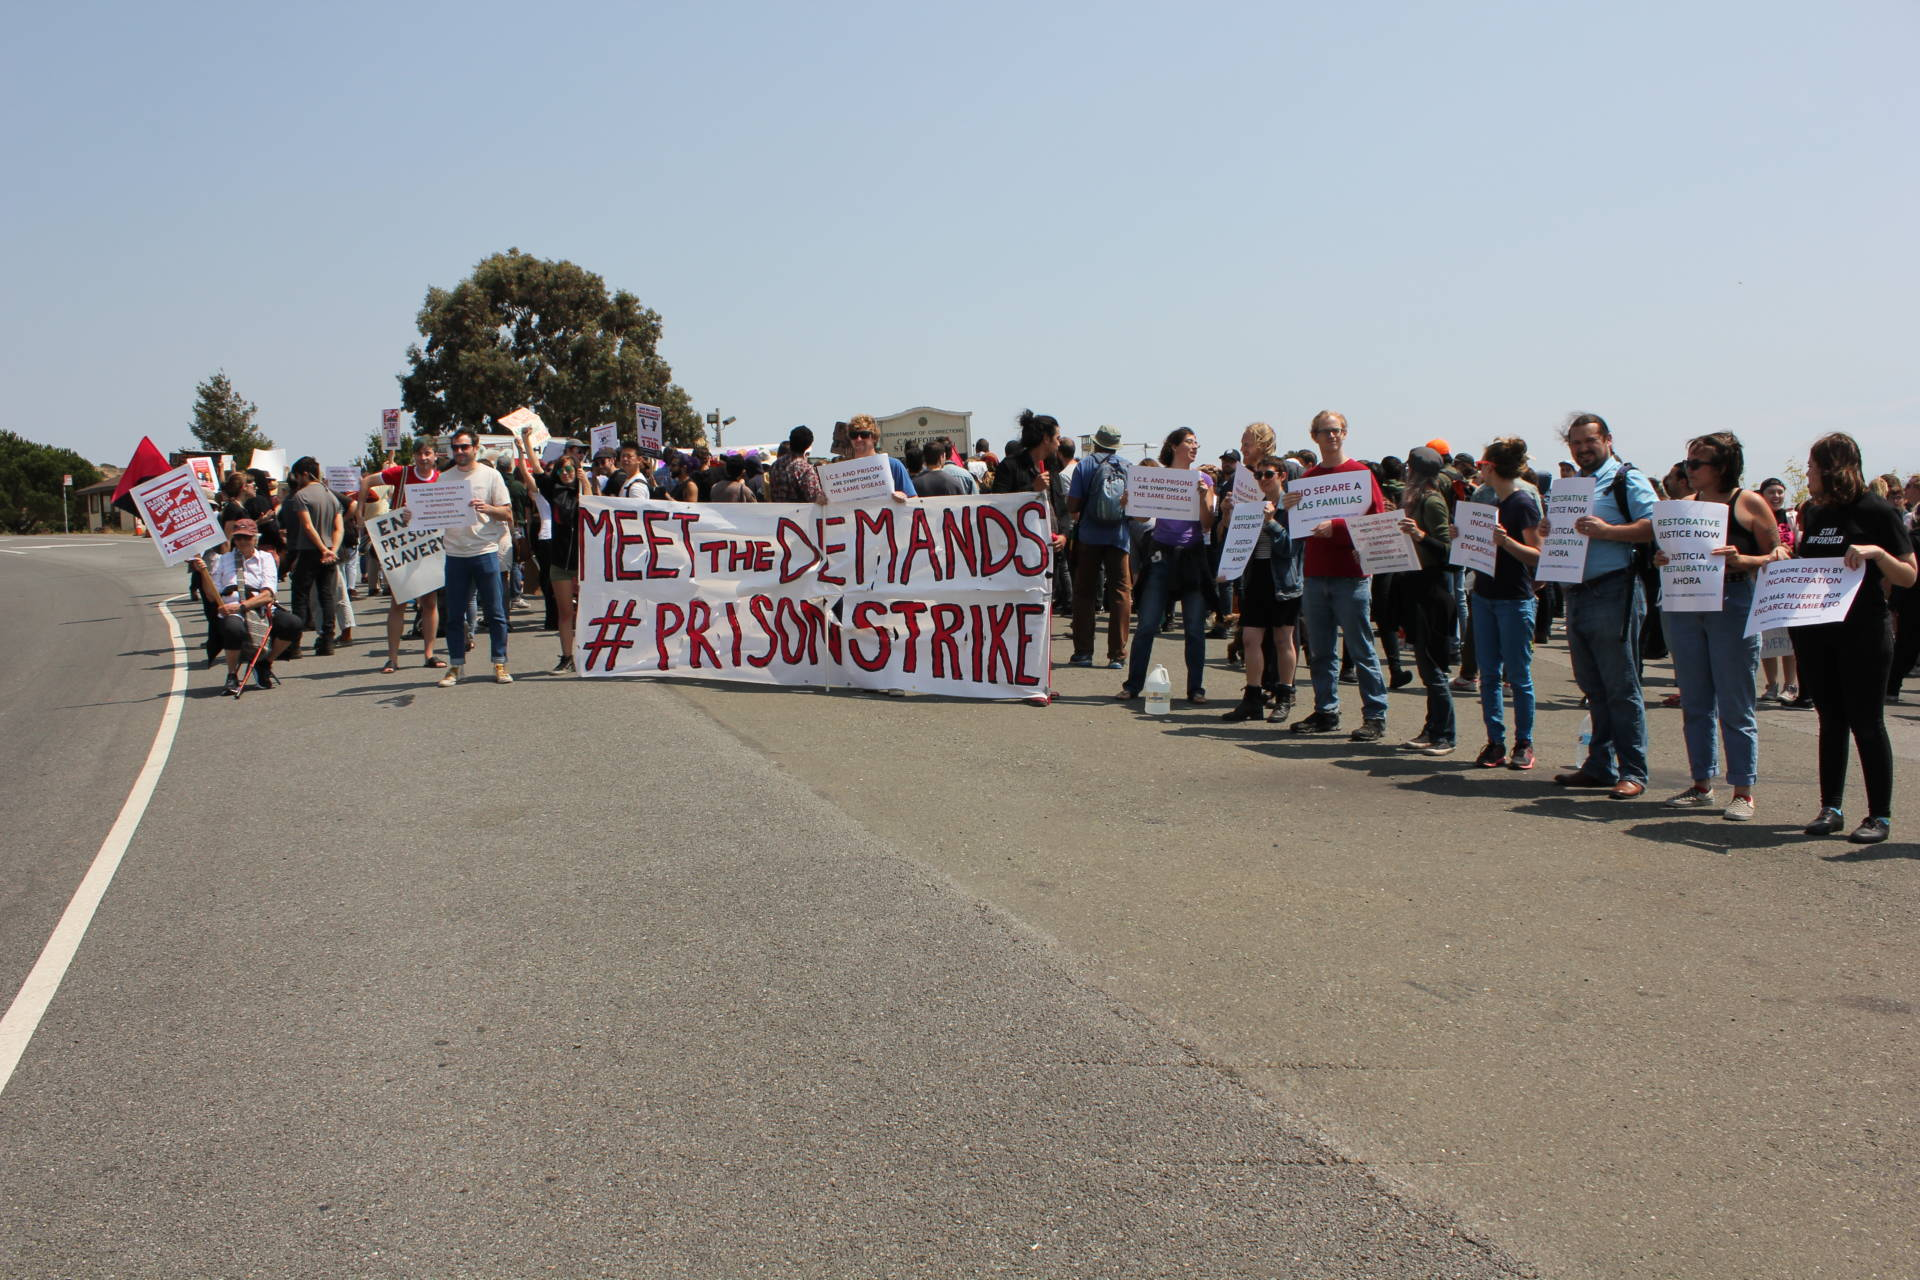 Protesters at San Quentin get approving honks from some passersby.  Sara Hossaini/KQED